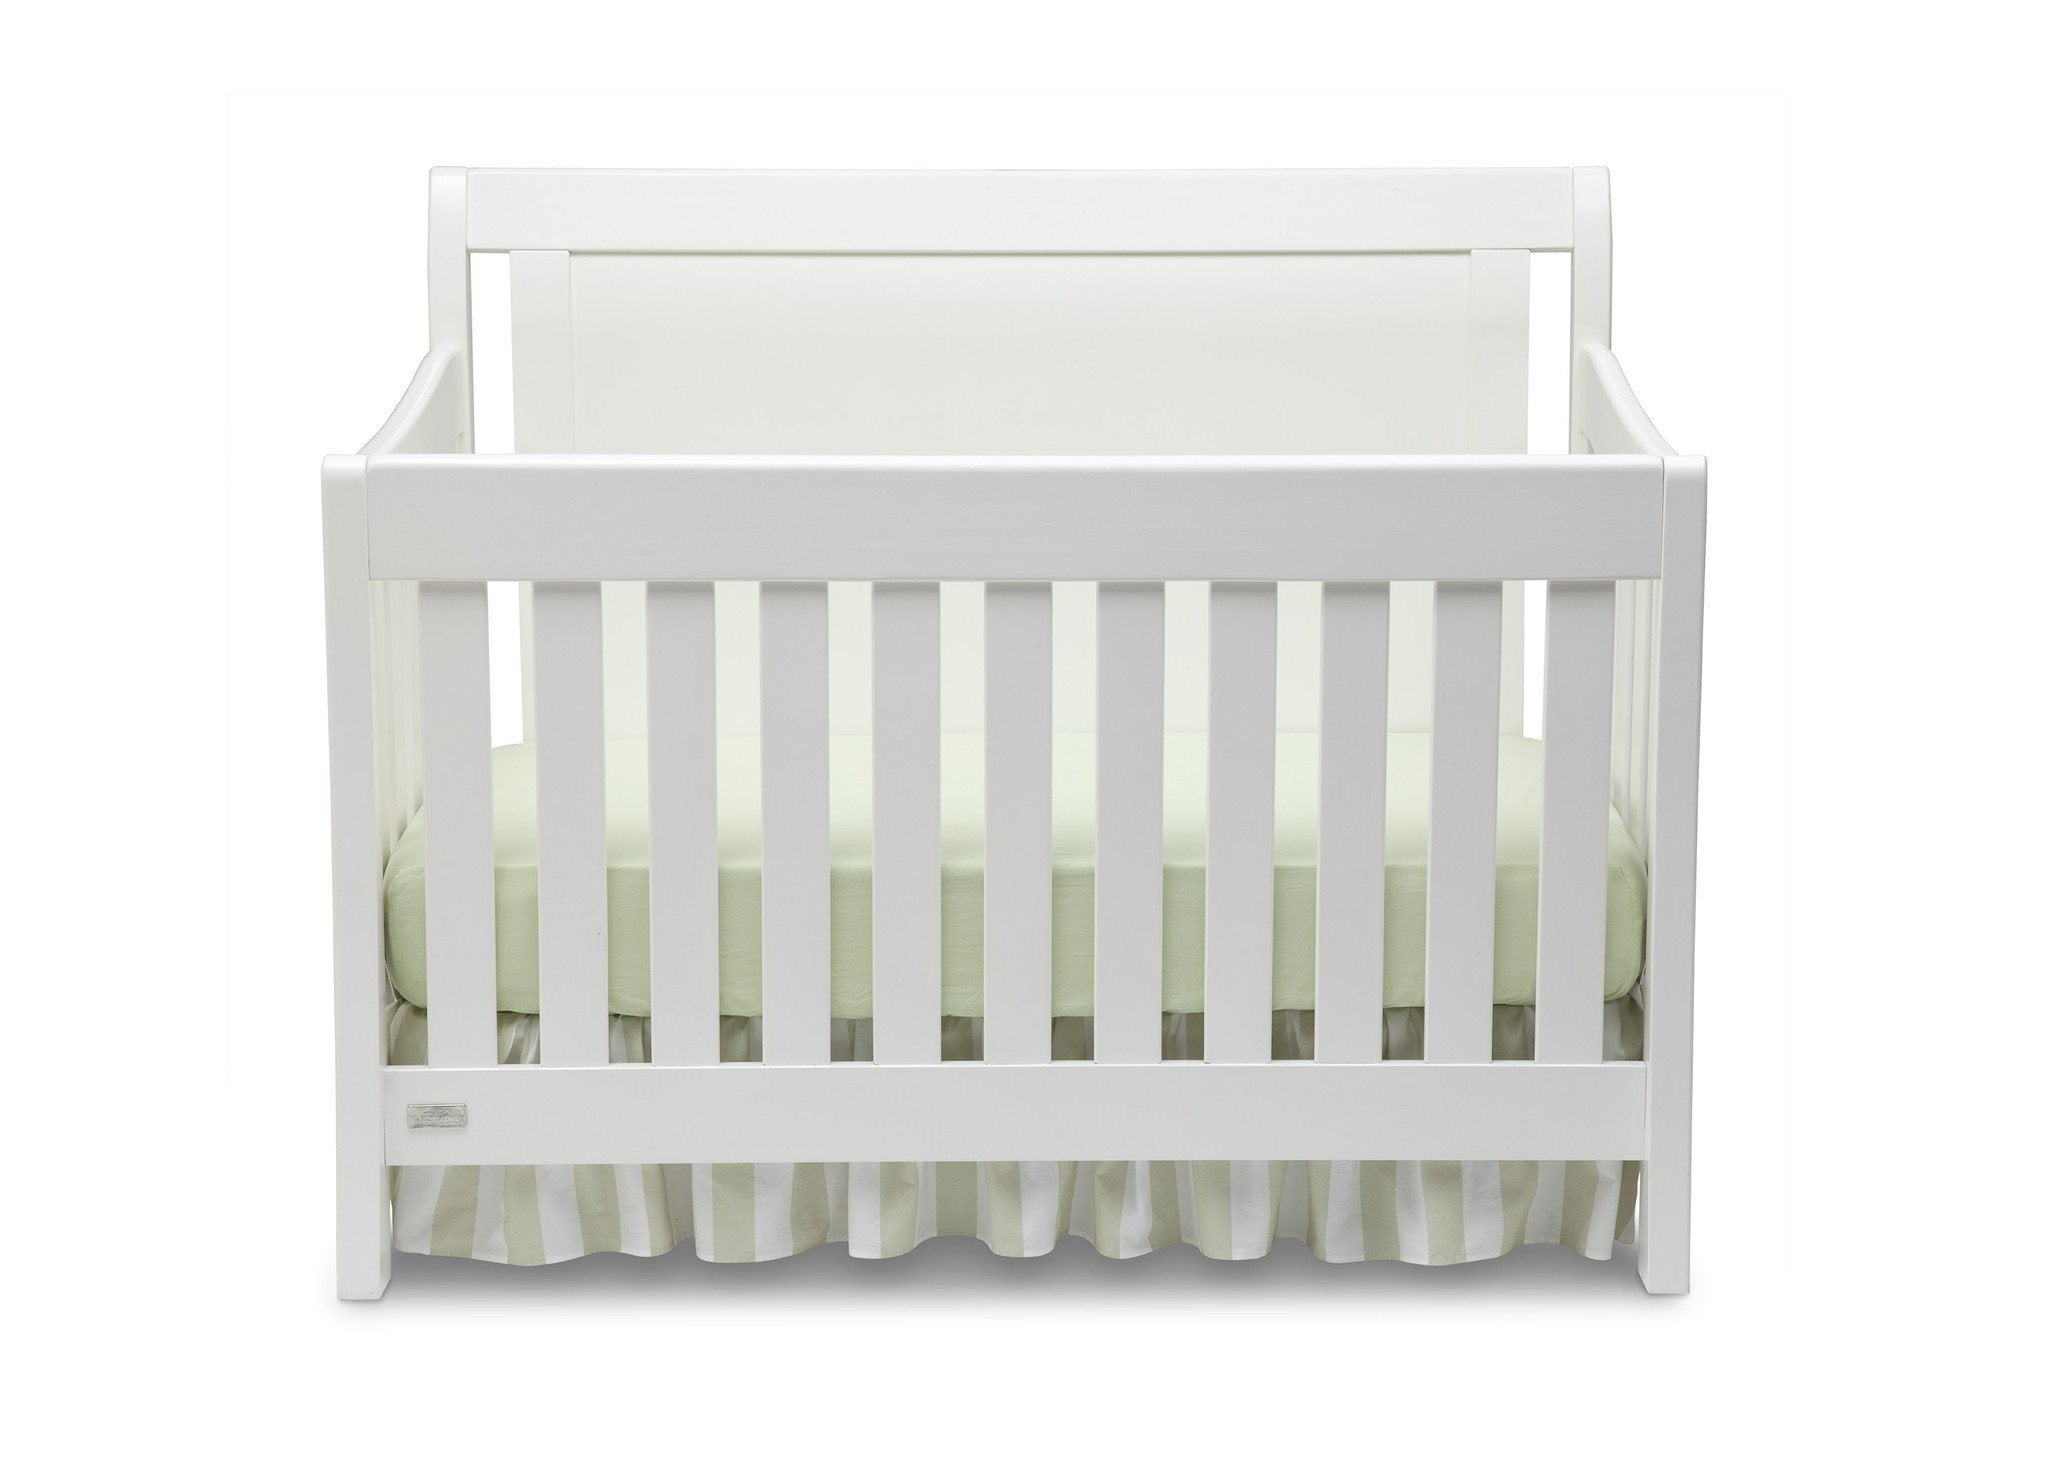 Simmons Kids White Ambiance (108) Madisson Crib 'N' More, Crib Conversion a1a